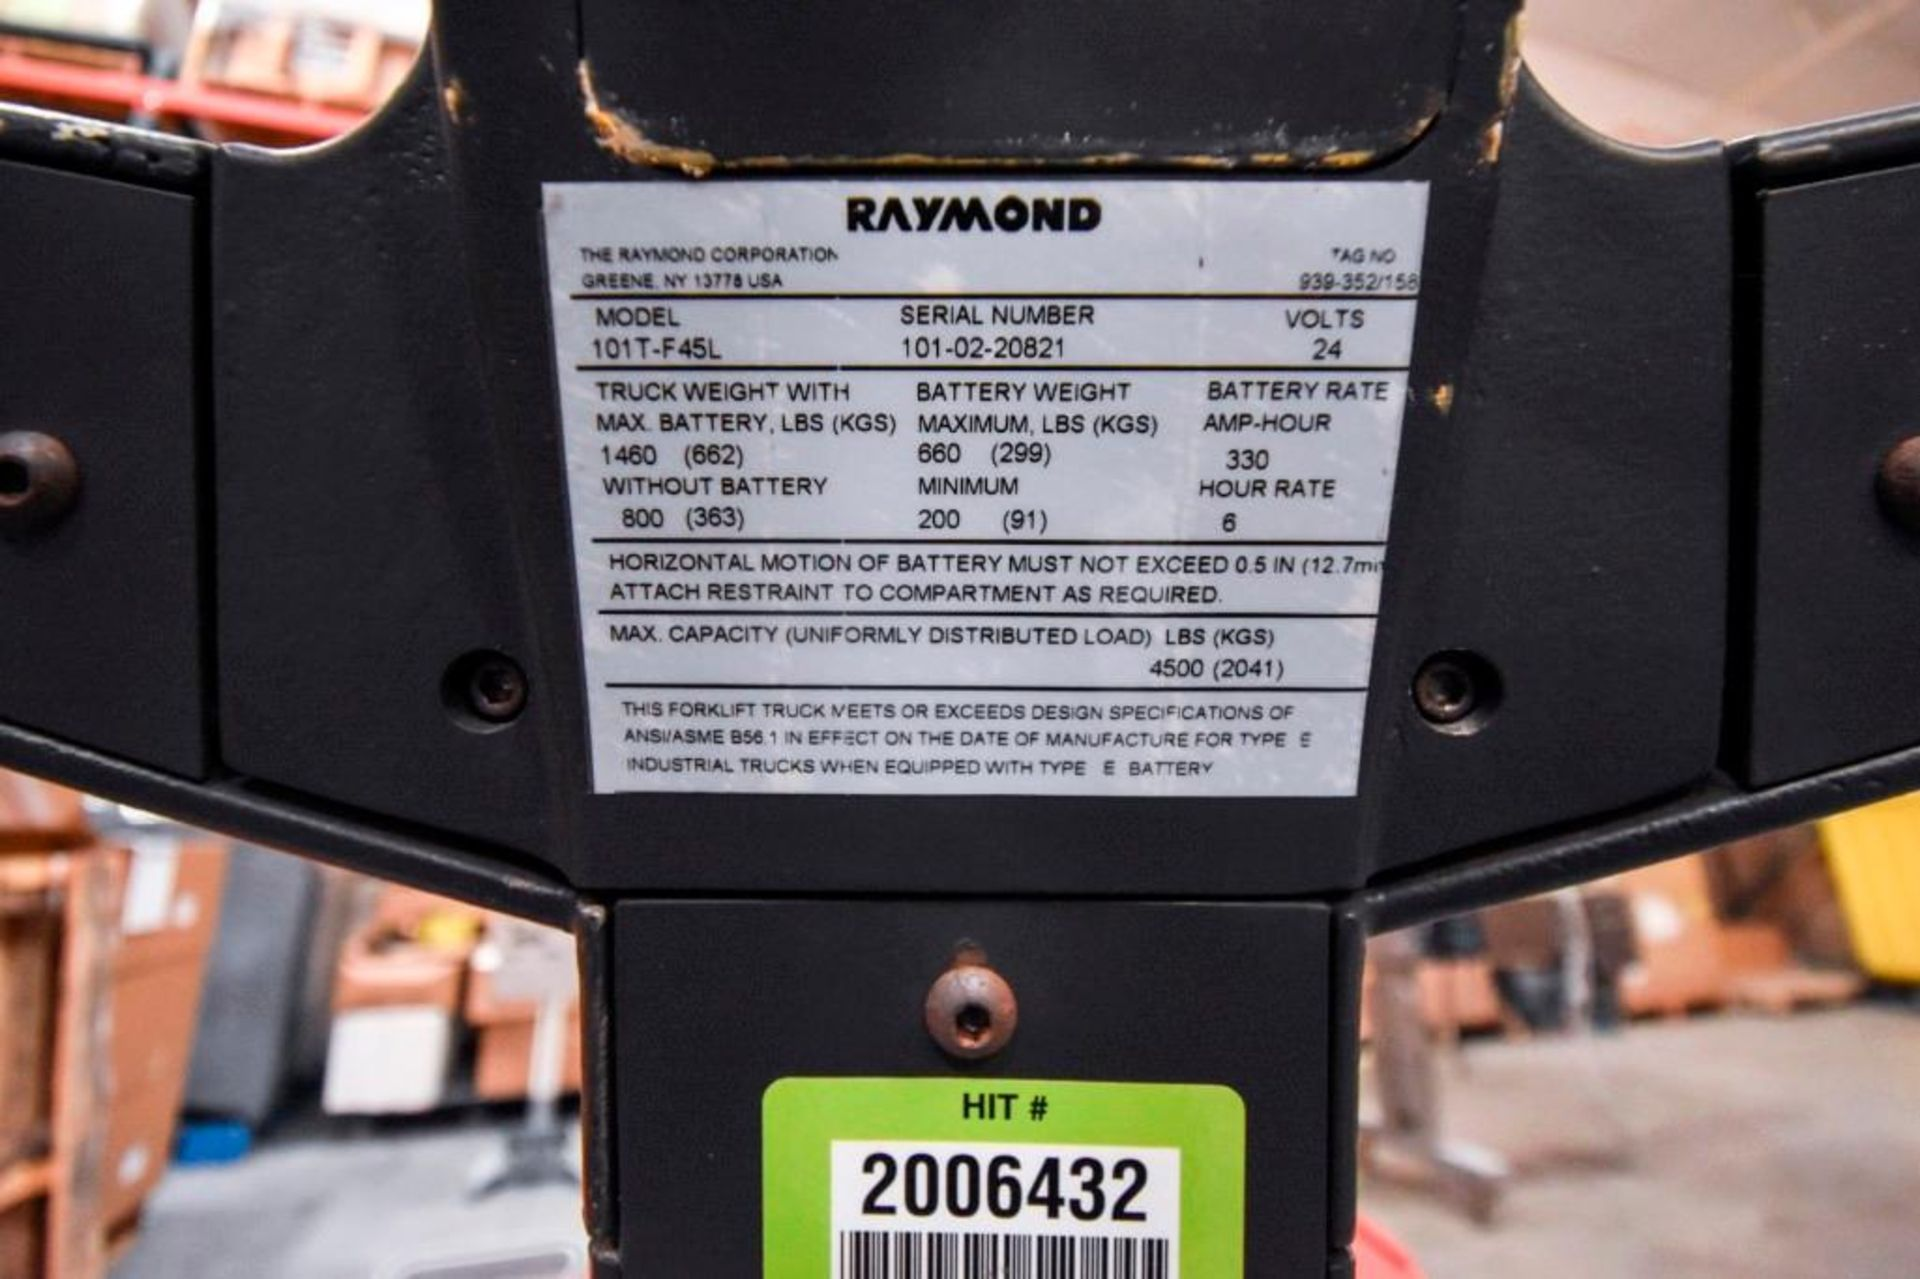 Raymond Electric Pallet Jack - Image 9 of 10